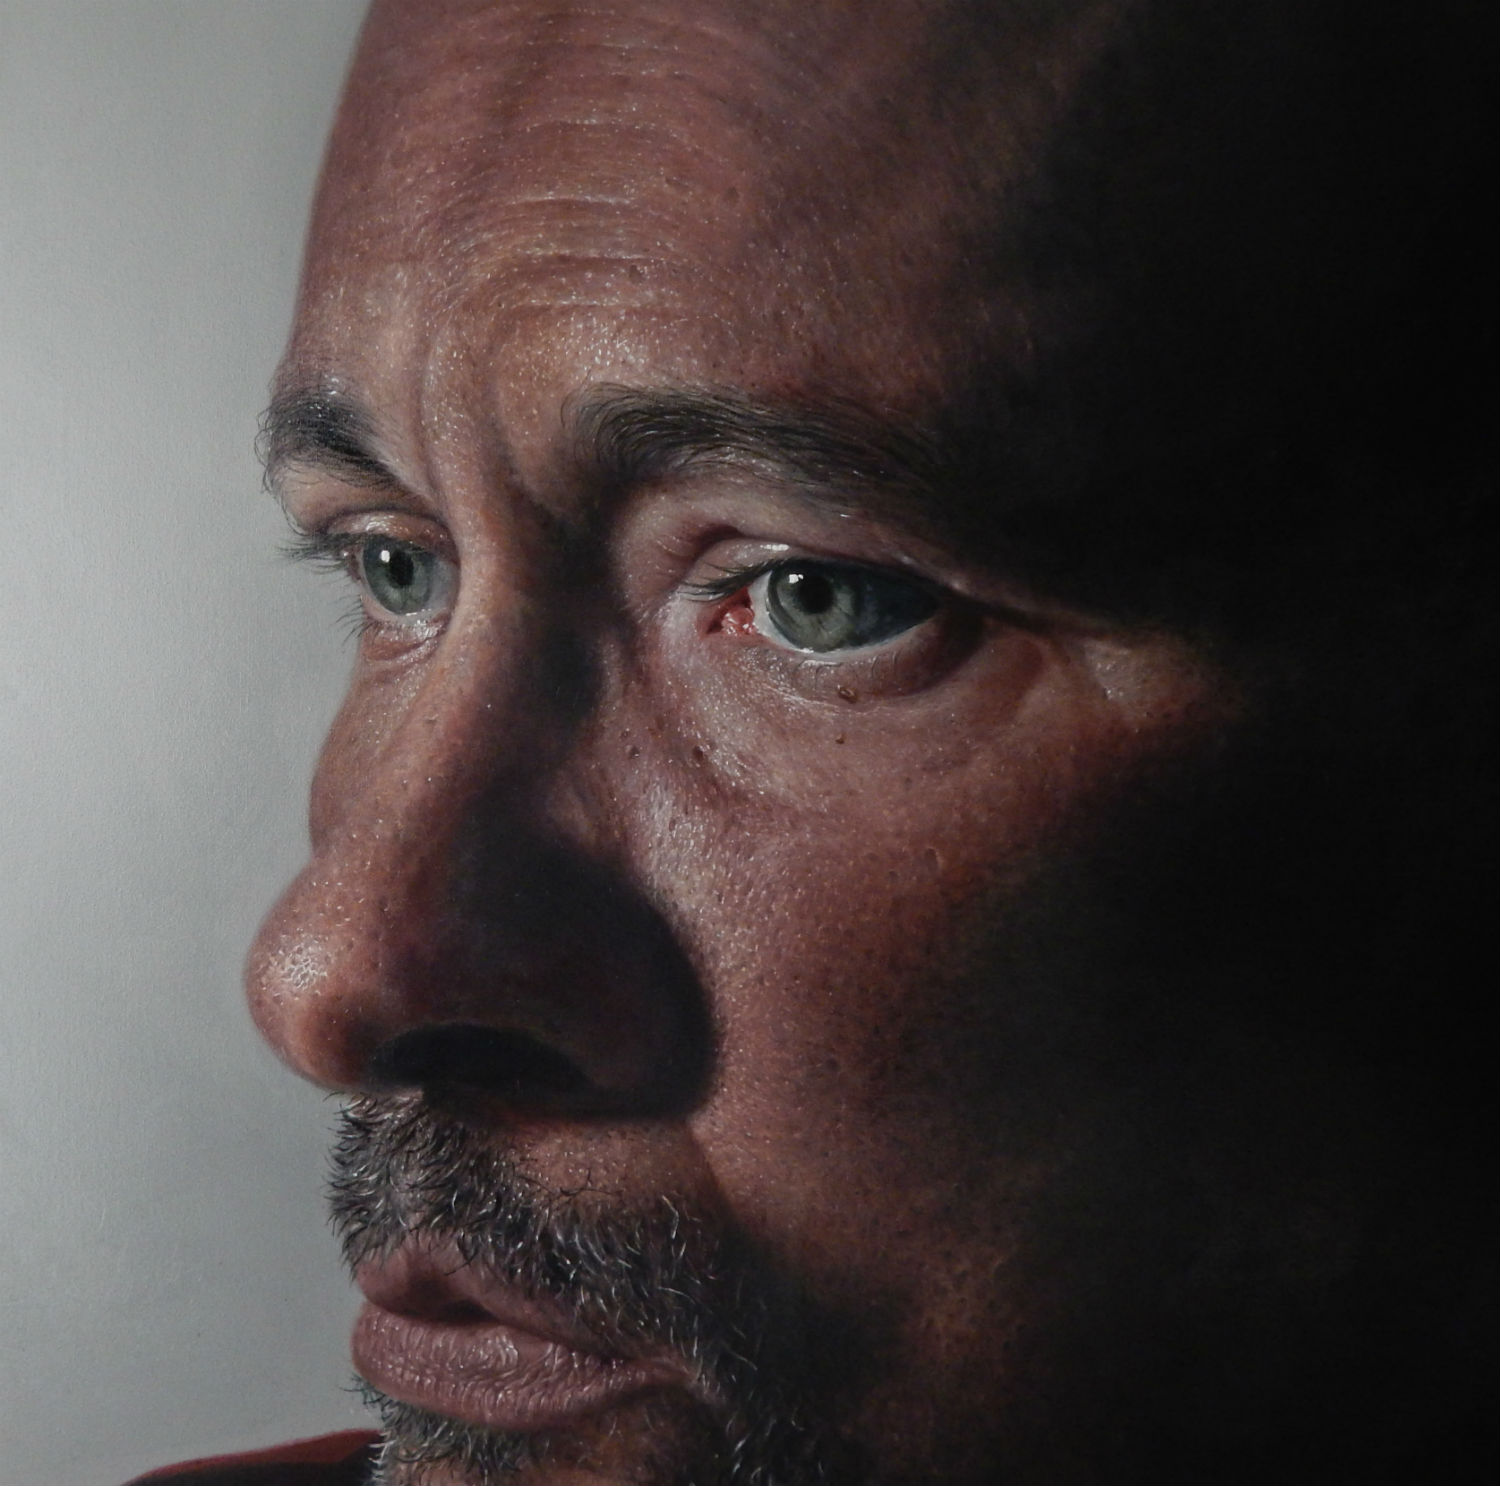 kit king new work hyper realist painting portrait